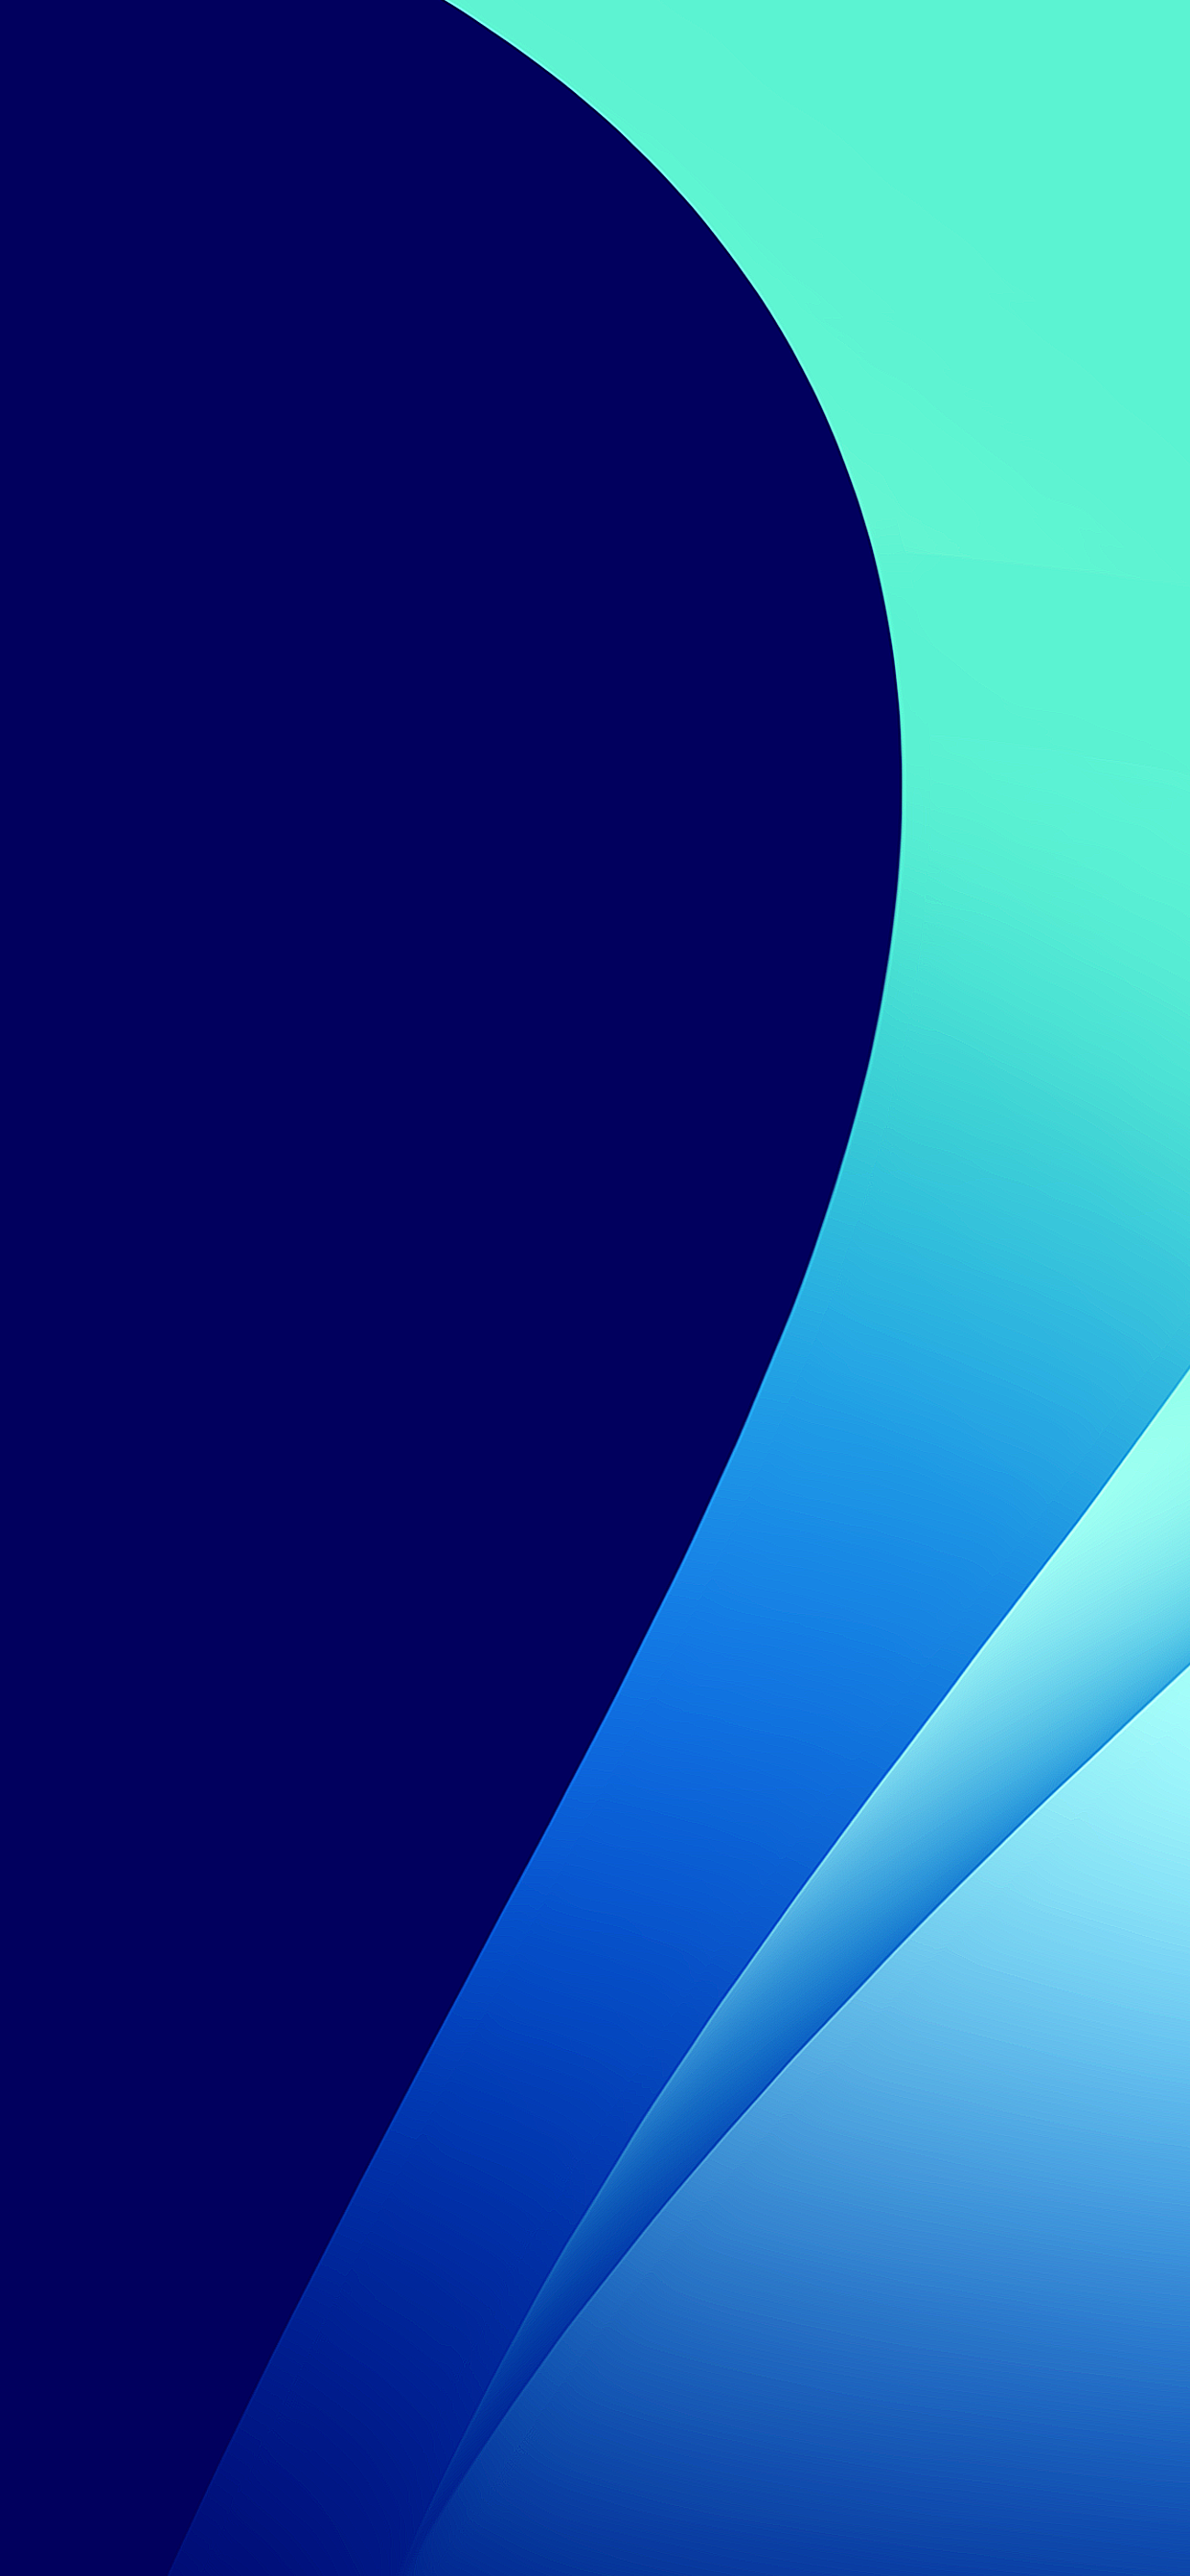 Curved Geometry By Ar72014 On Twitter Hd Phone Wallpapers